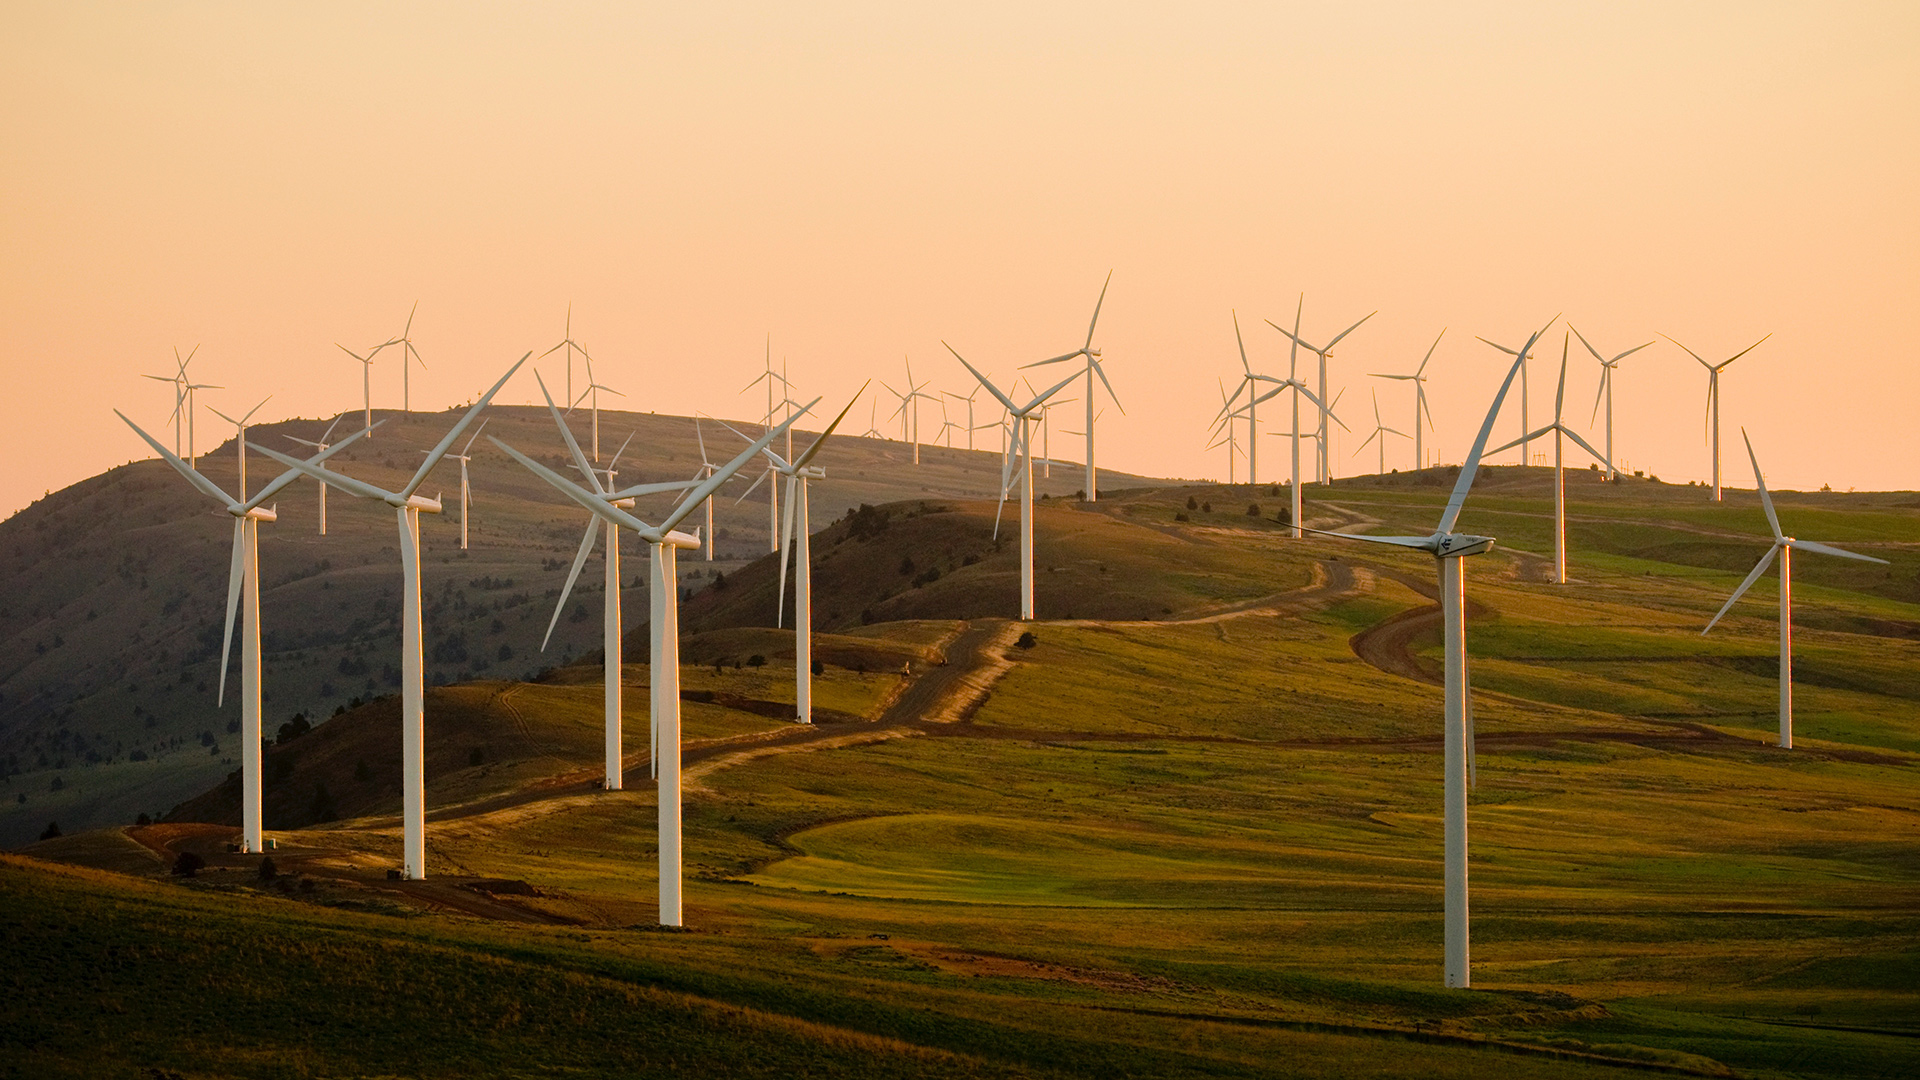 wind turbines across the countryside at sunset